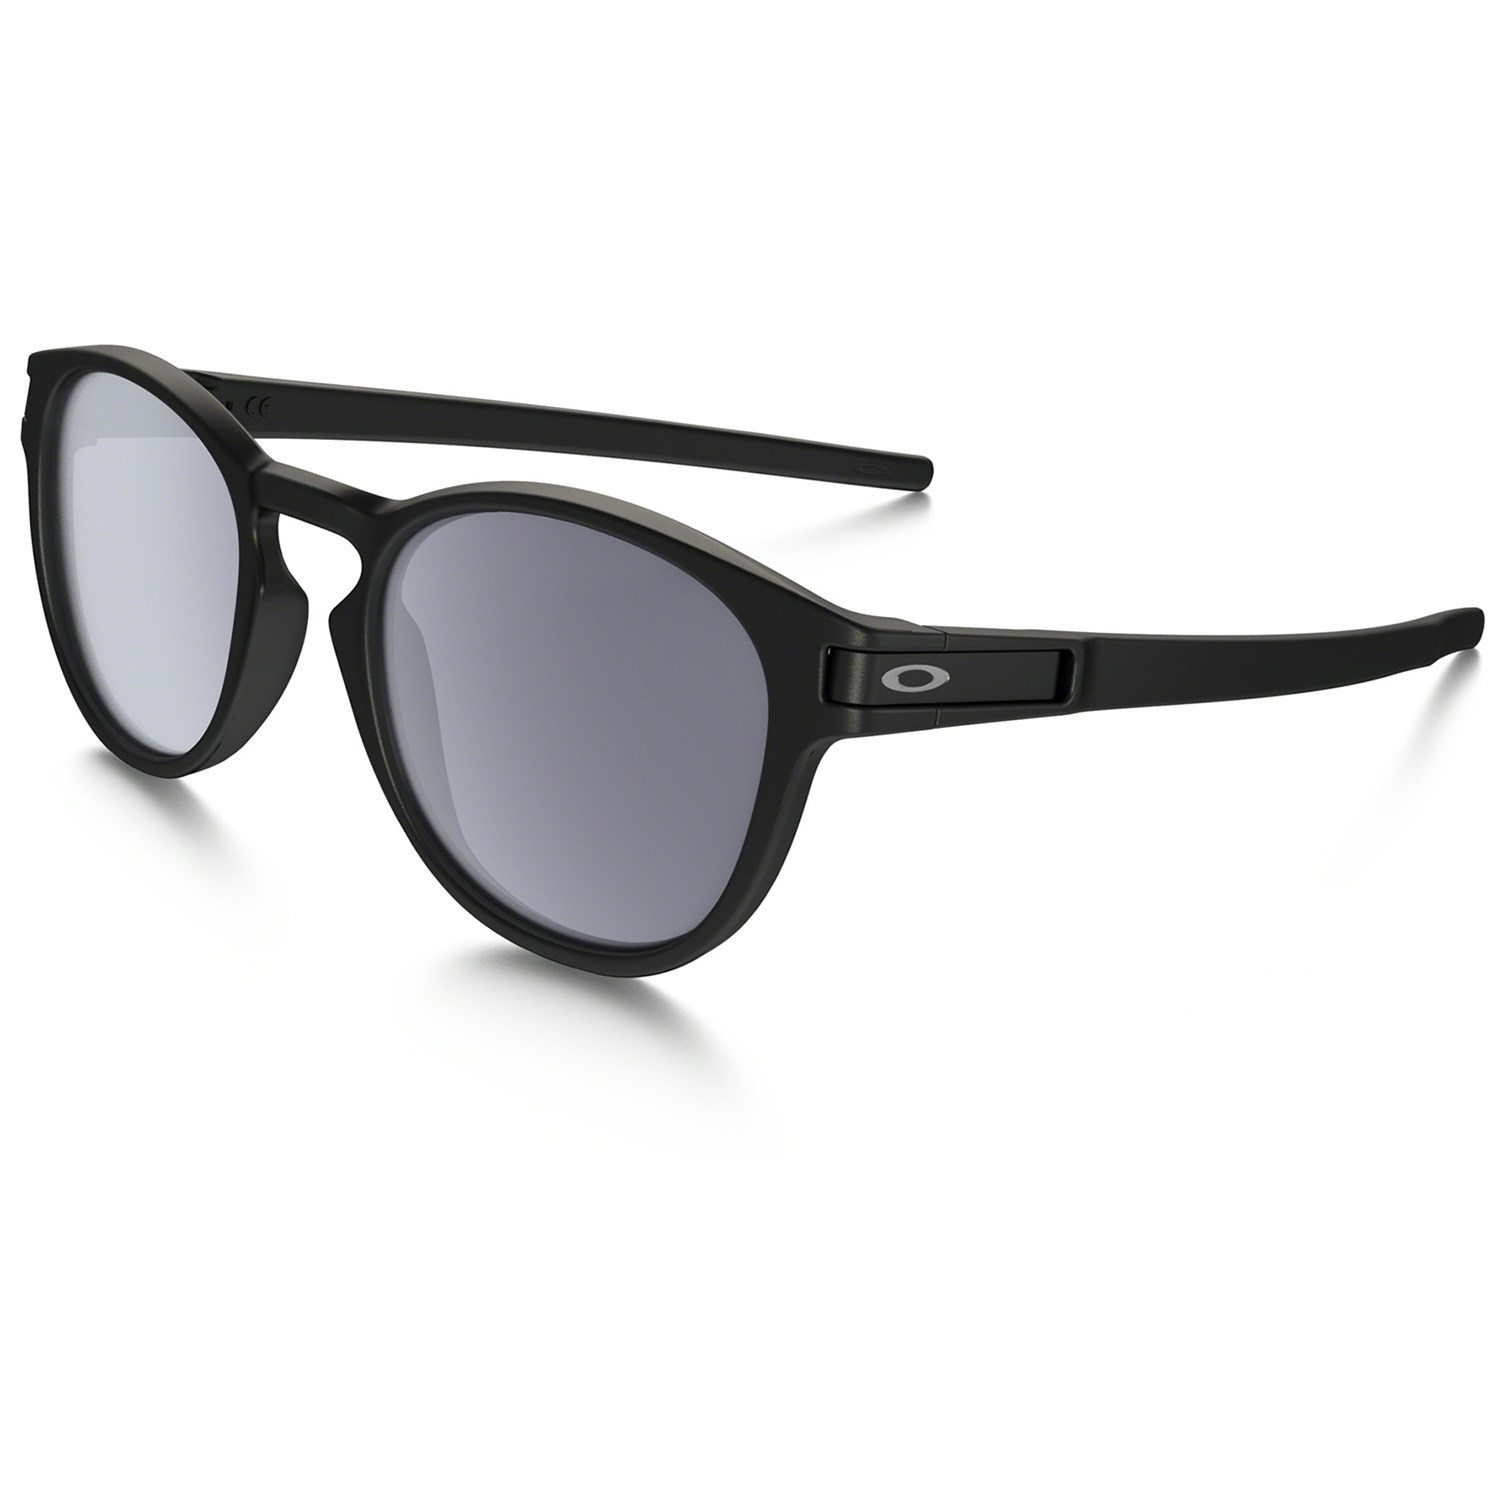 Oakley Sunglass  oakley latch sunglasses evo